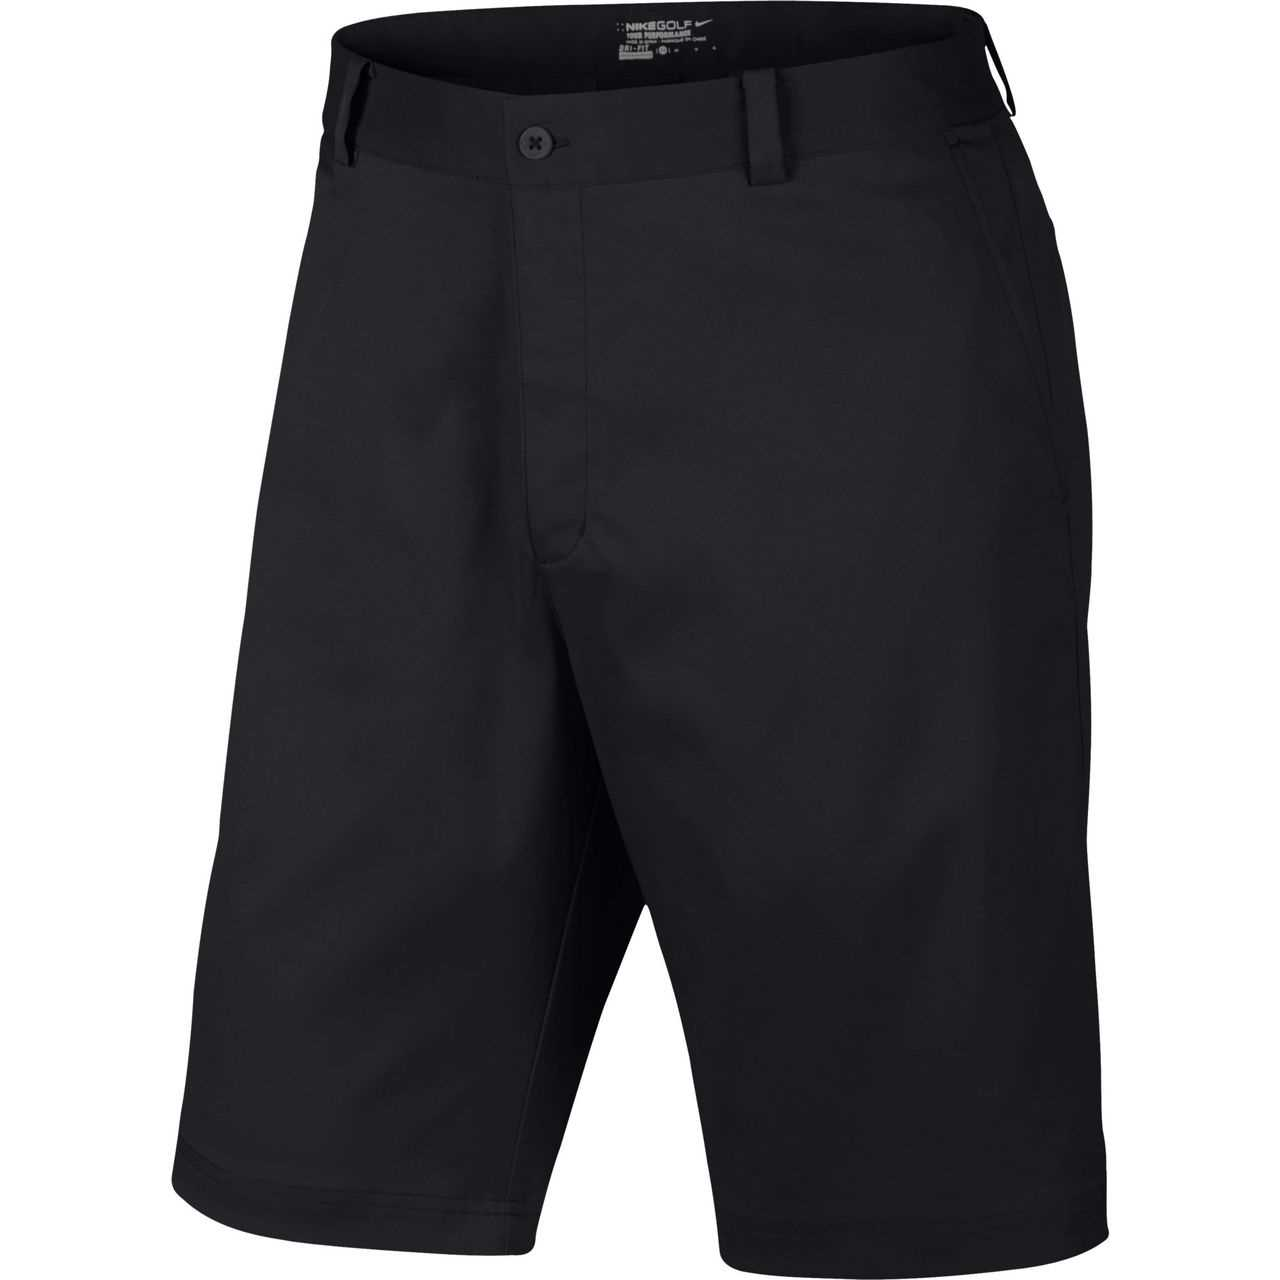 ecd32771cd Nike Men's Dri-FIT Flat Front Shorts - Black